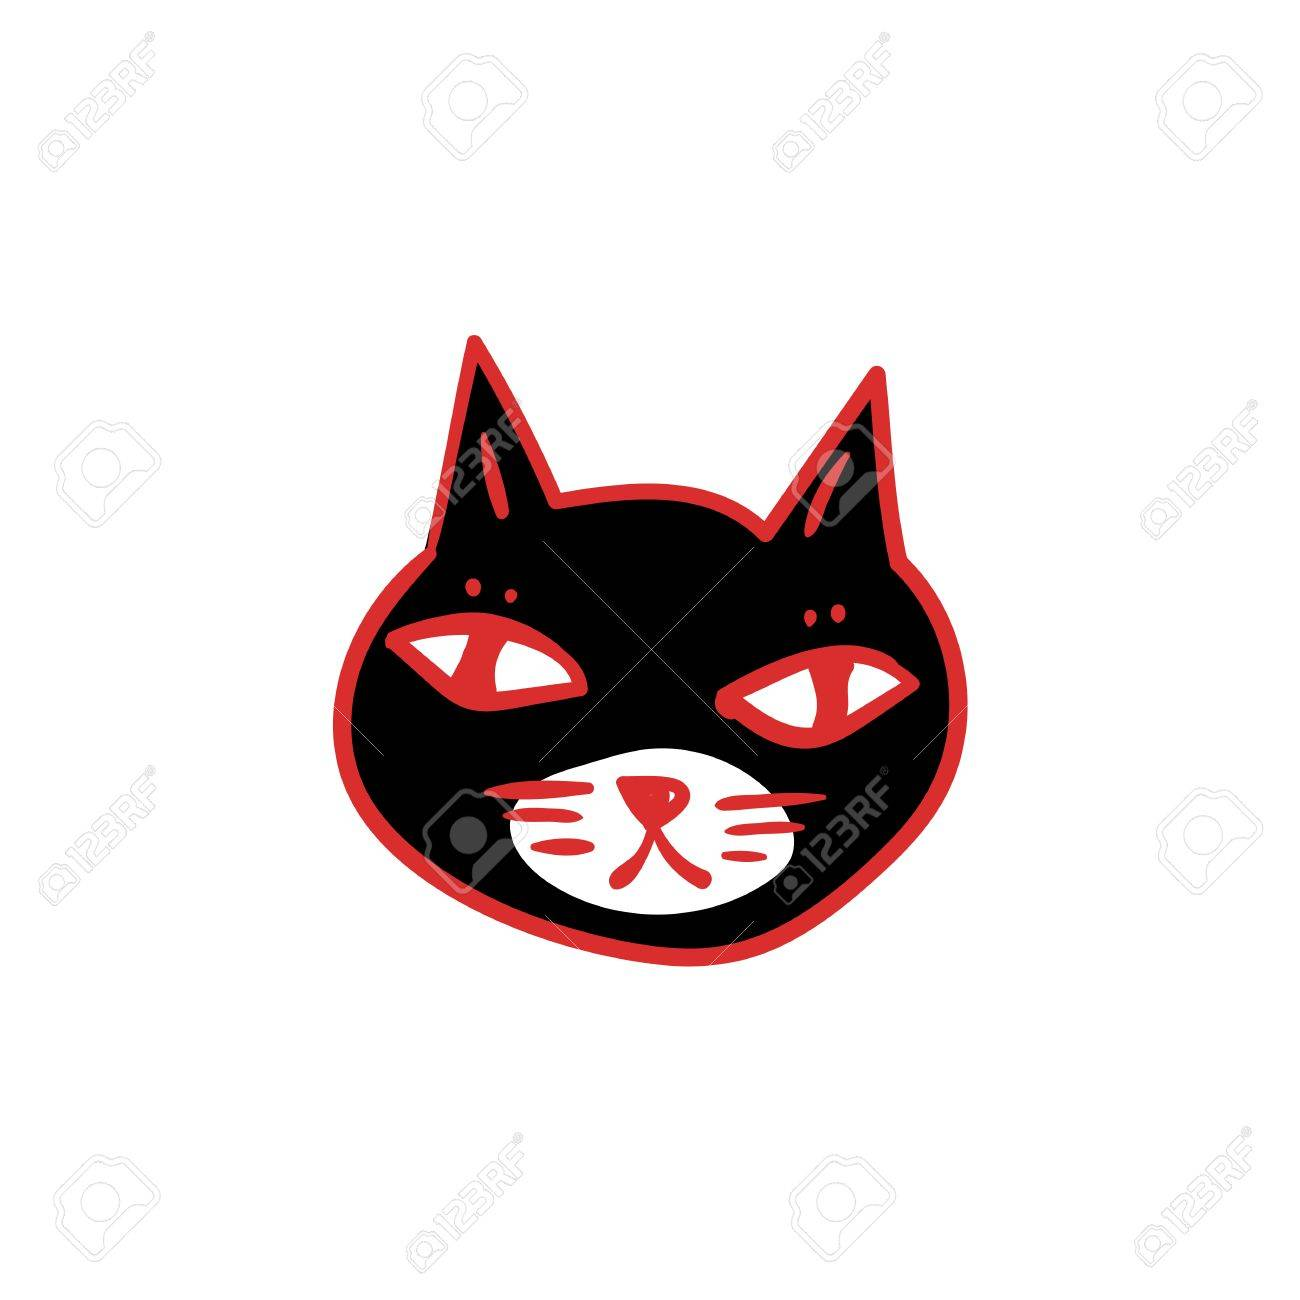 hight resolution of 1300x1300 black cat with red eyes witches and witchcraft symbol halloween